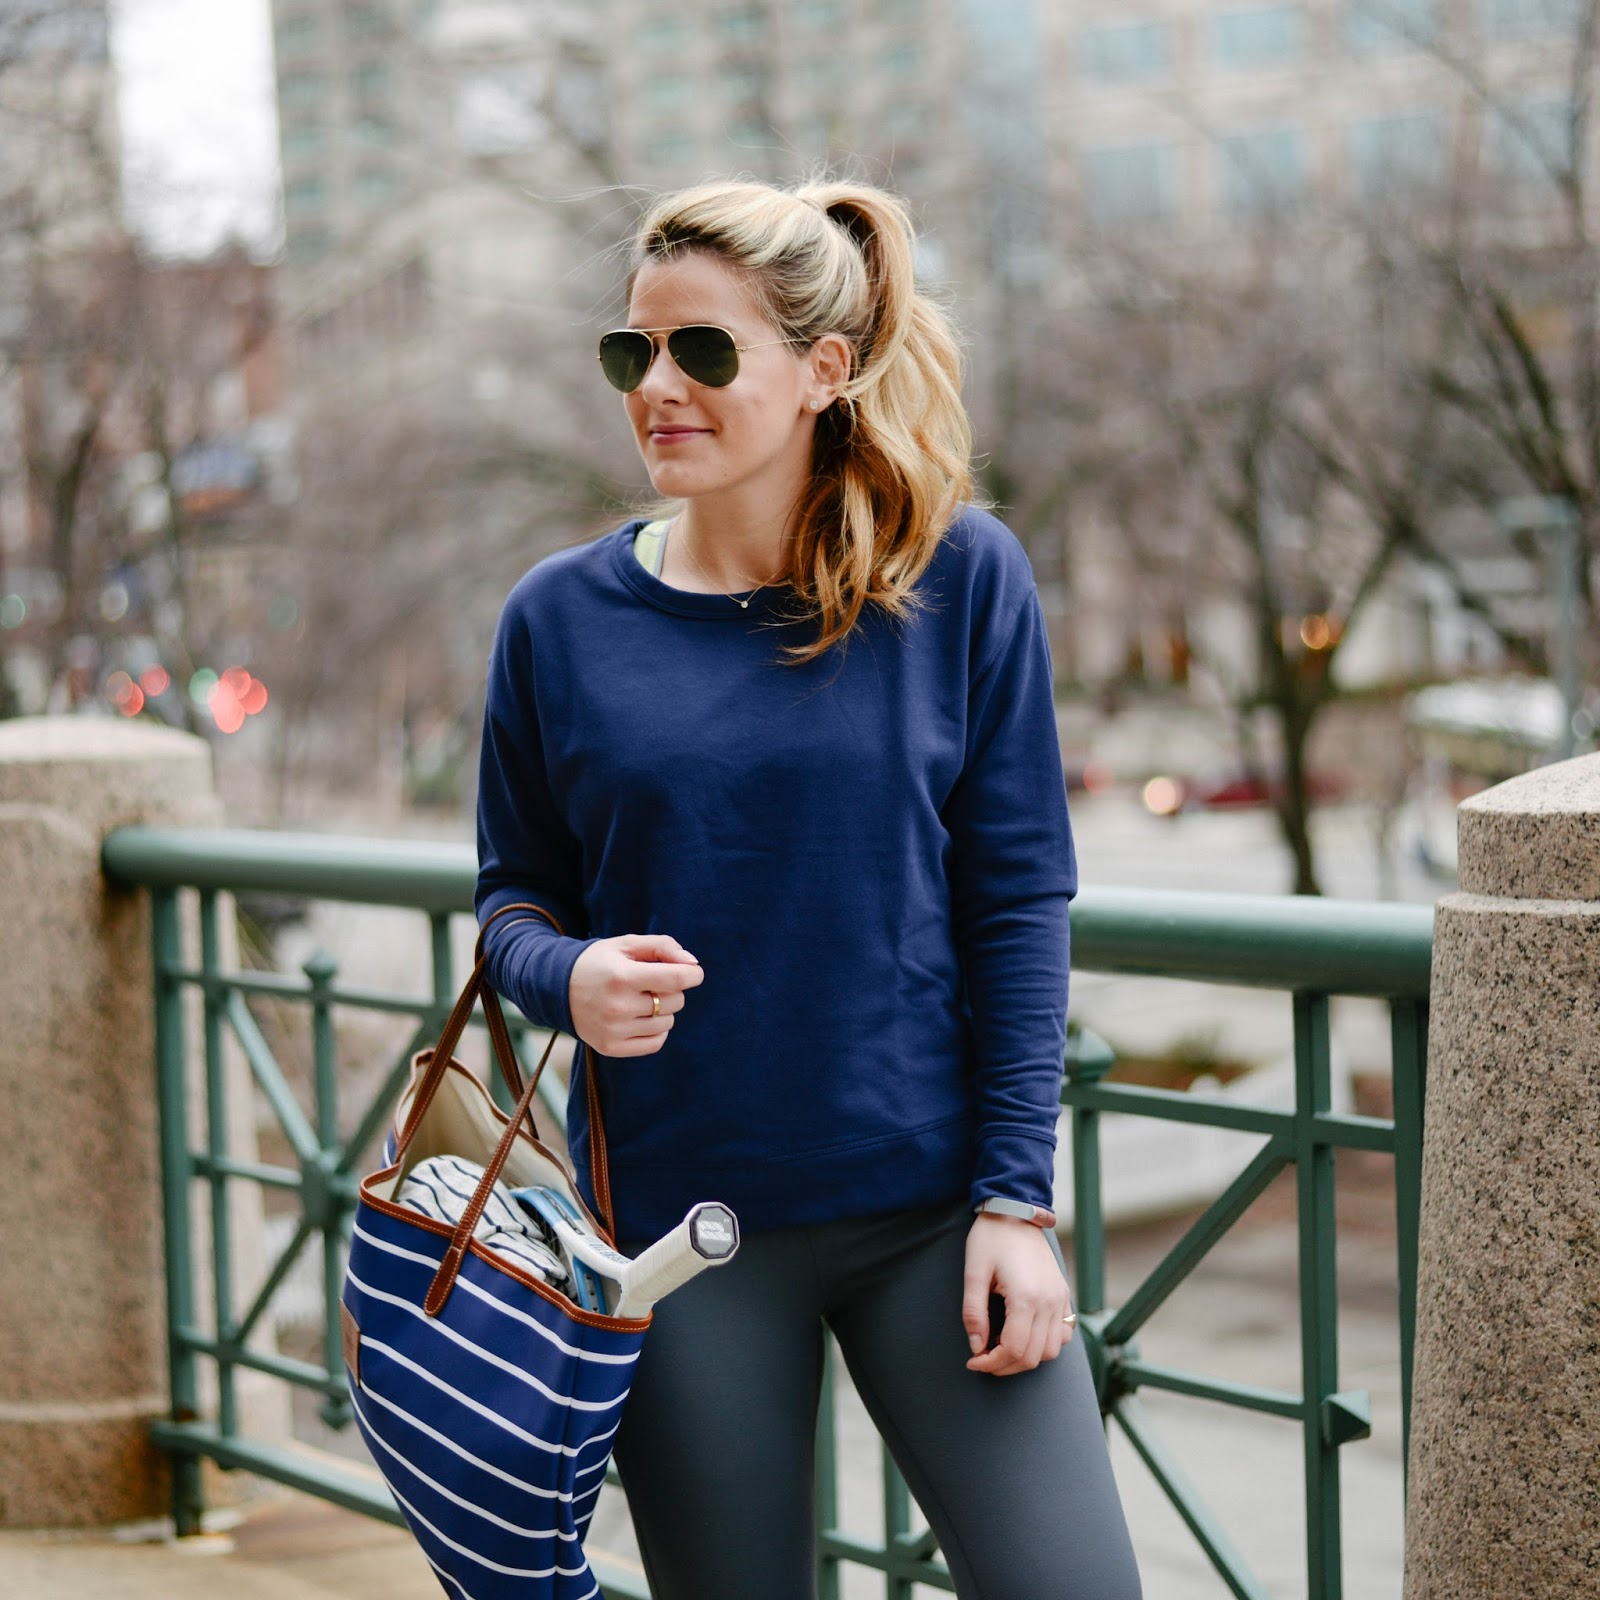 Summer Wind: Athleisure Outfit Inspo + Workout Playlist